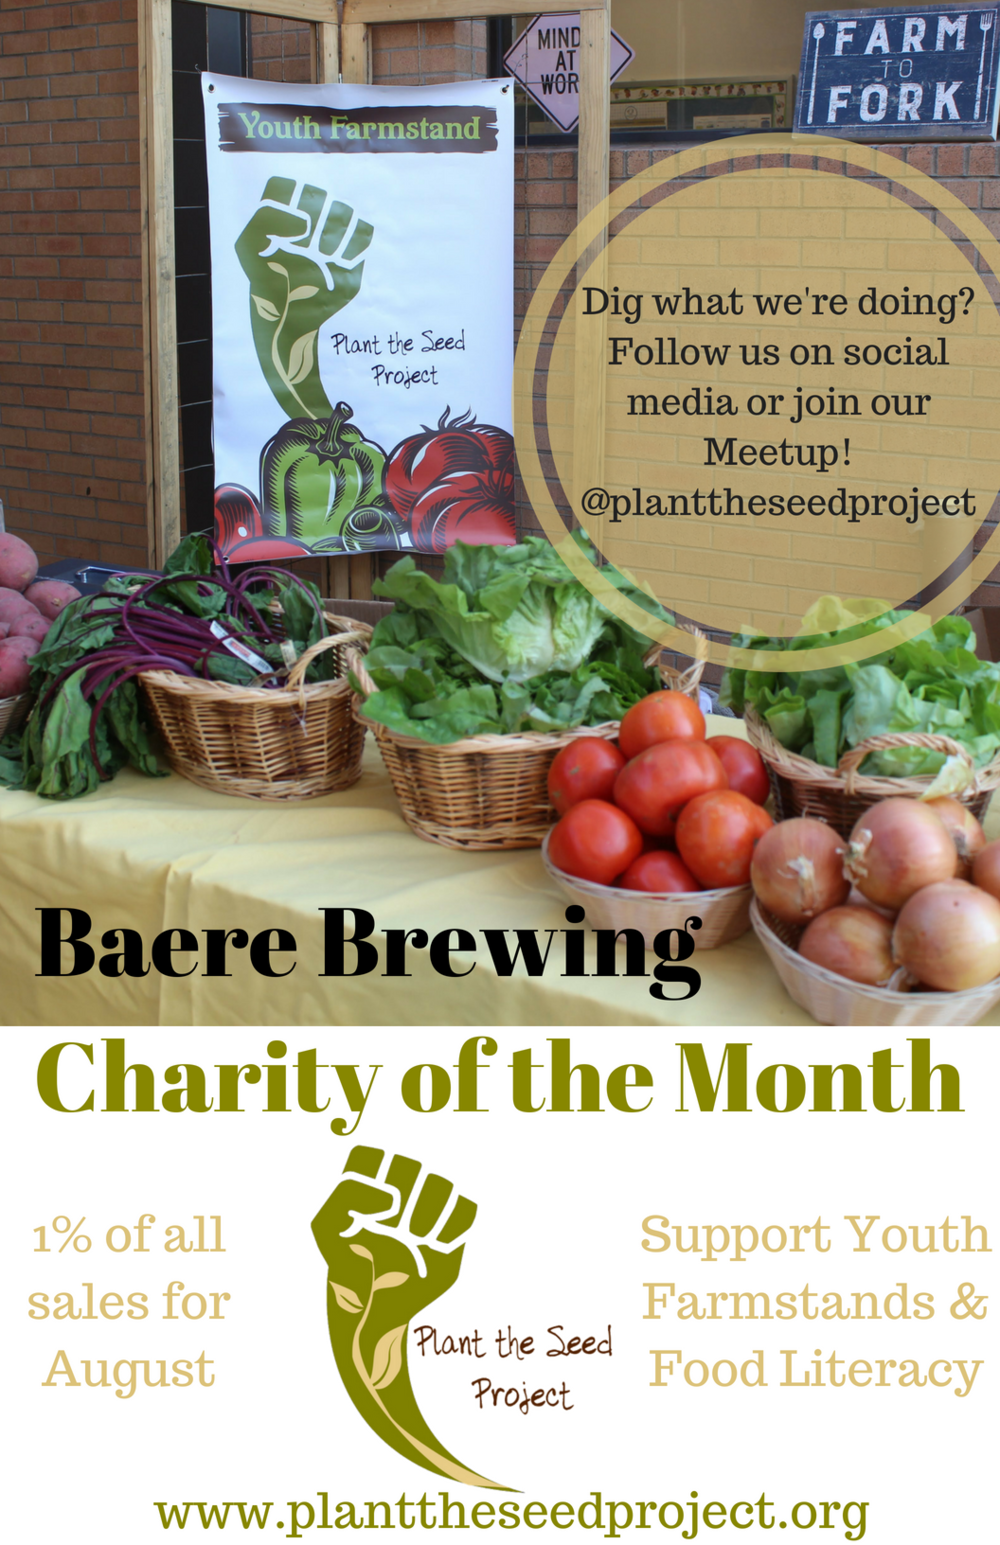 Baere Brewing Charity of the Month